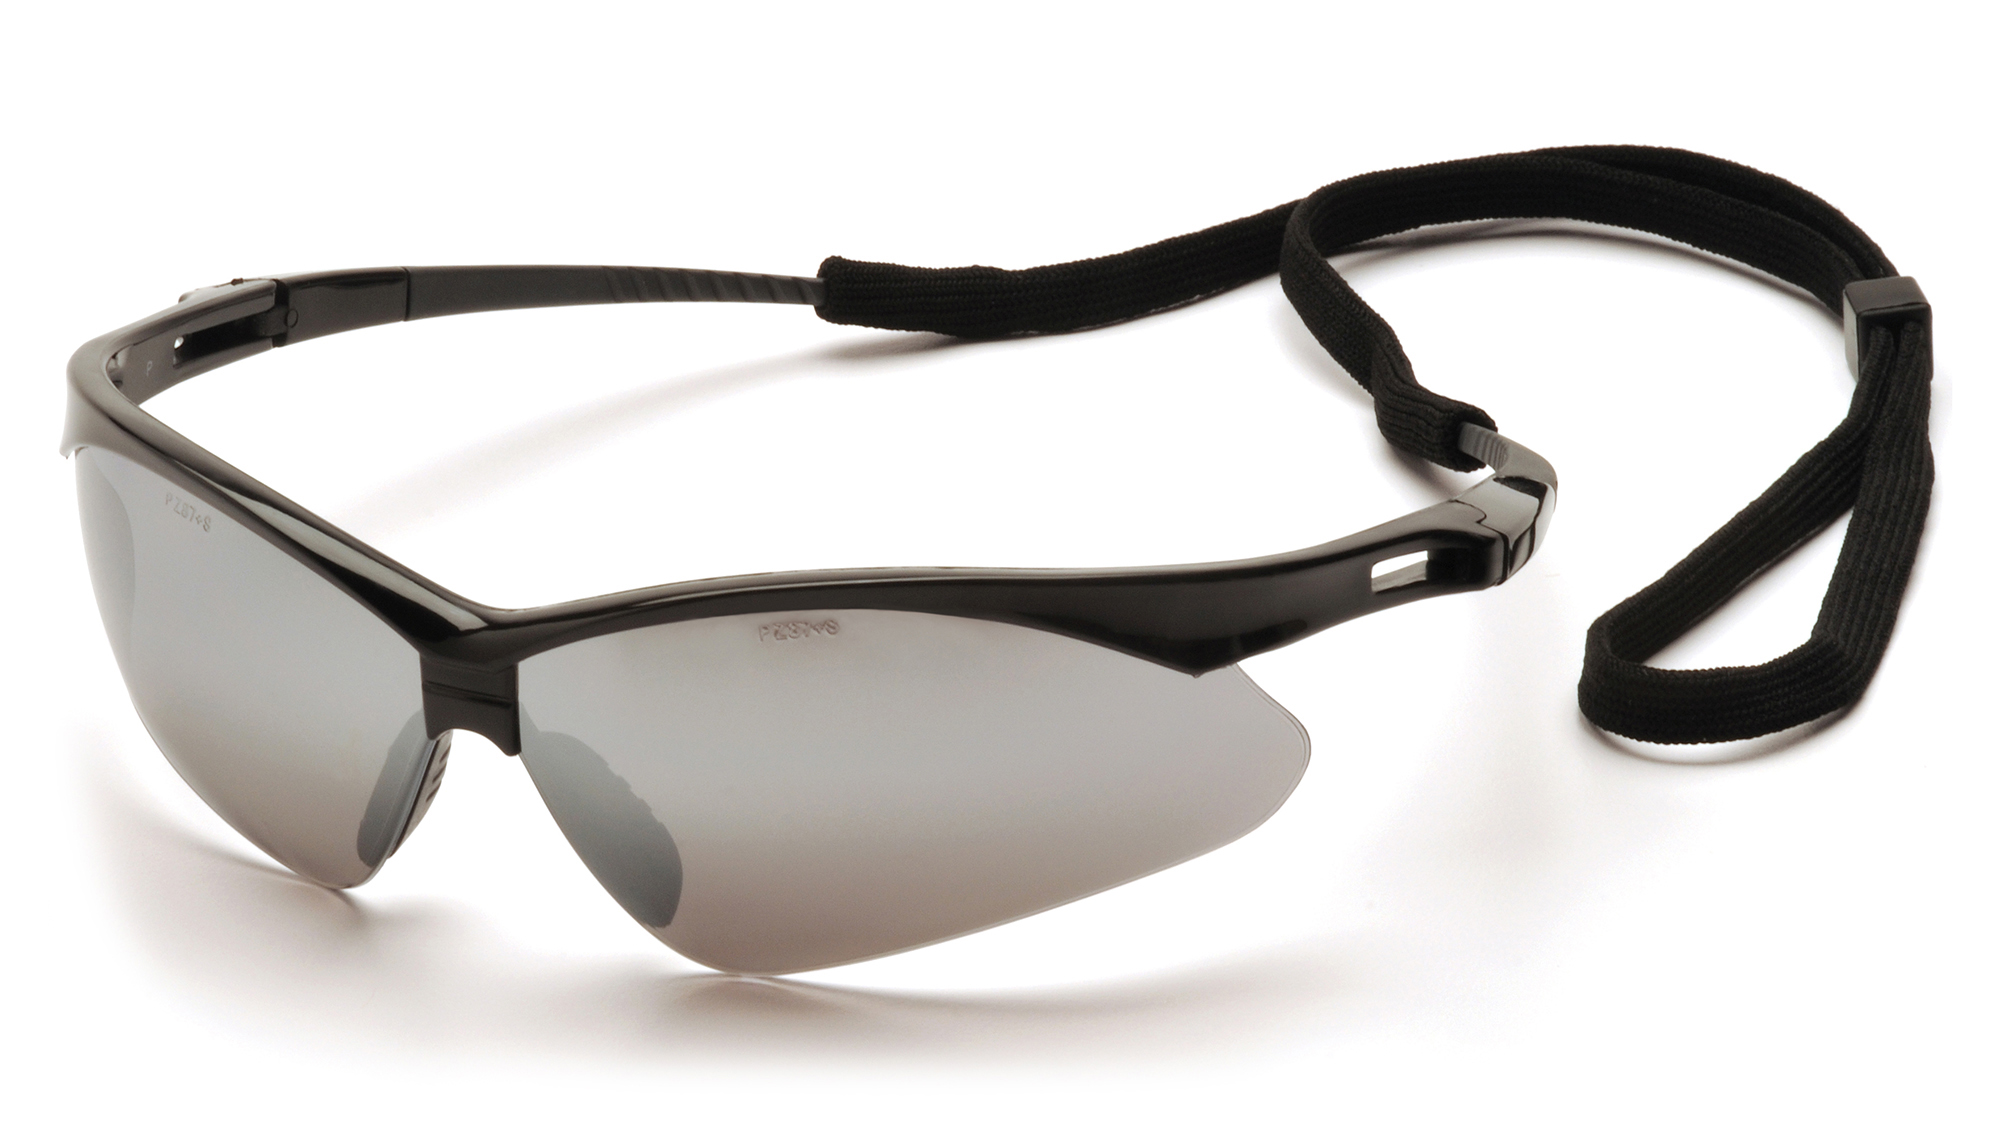 PMXTREME Safety Glasses - Black Frames Silver Mirror Lens